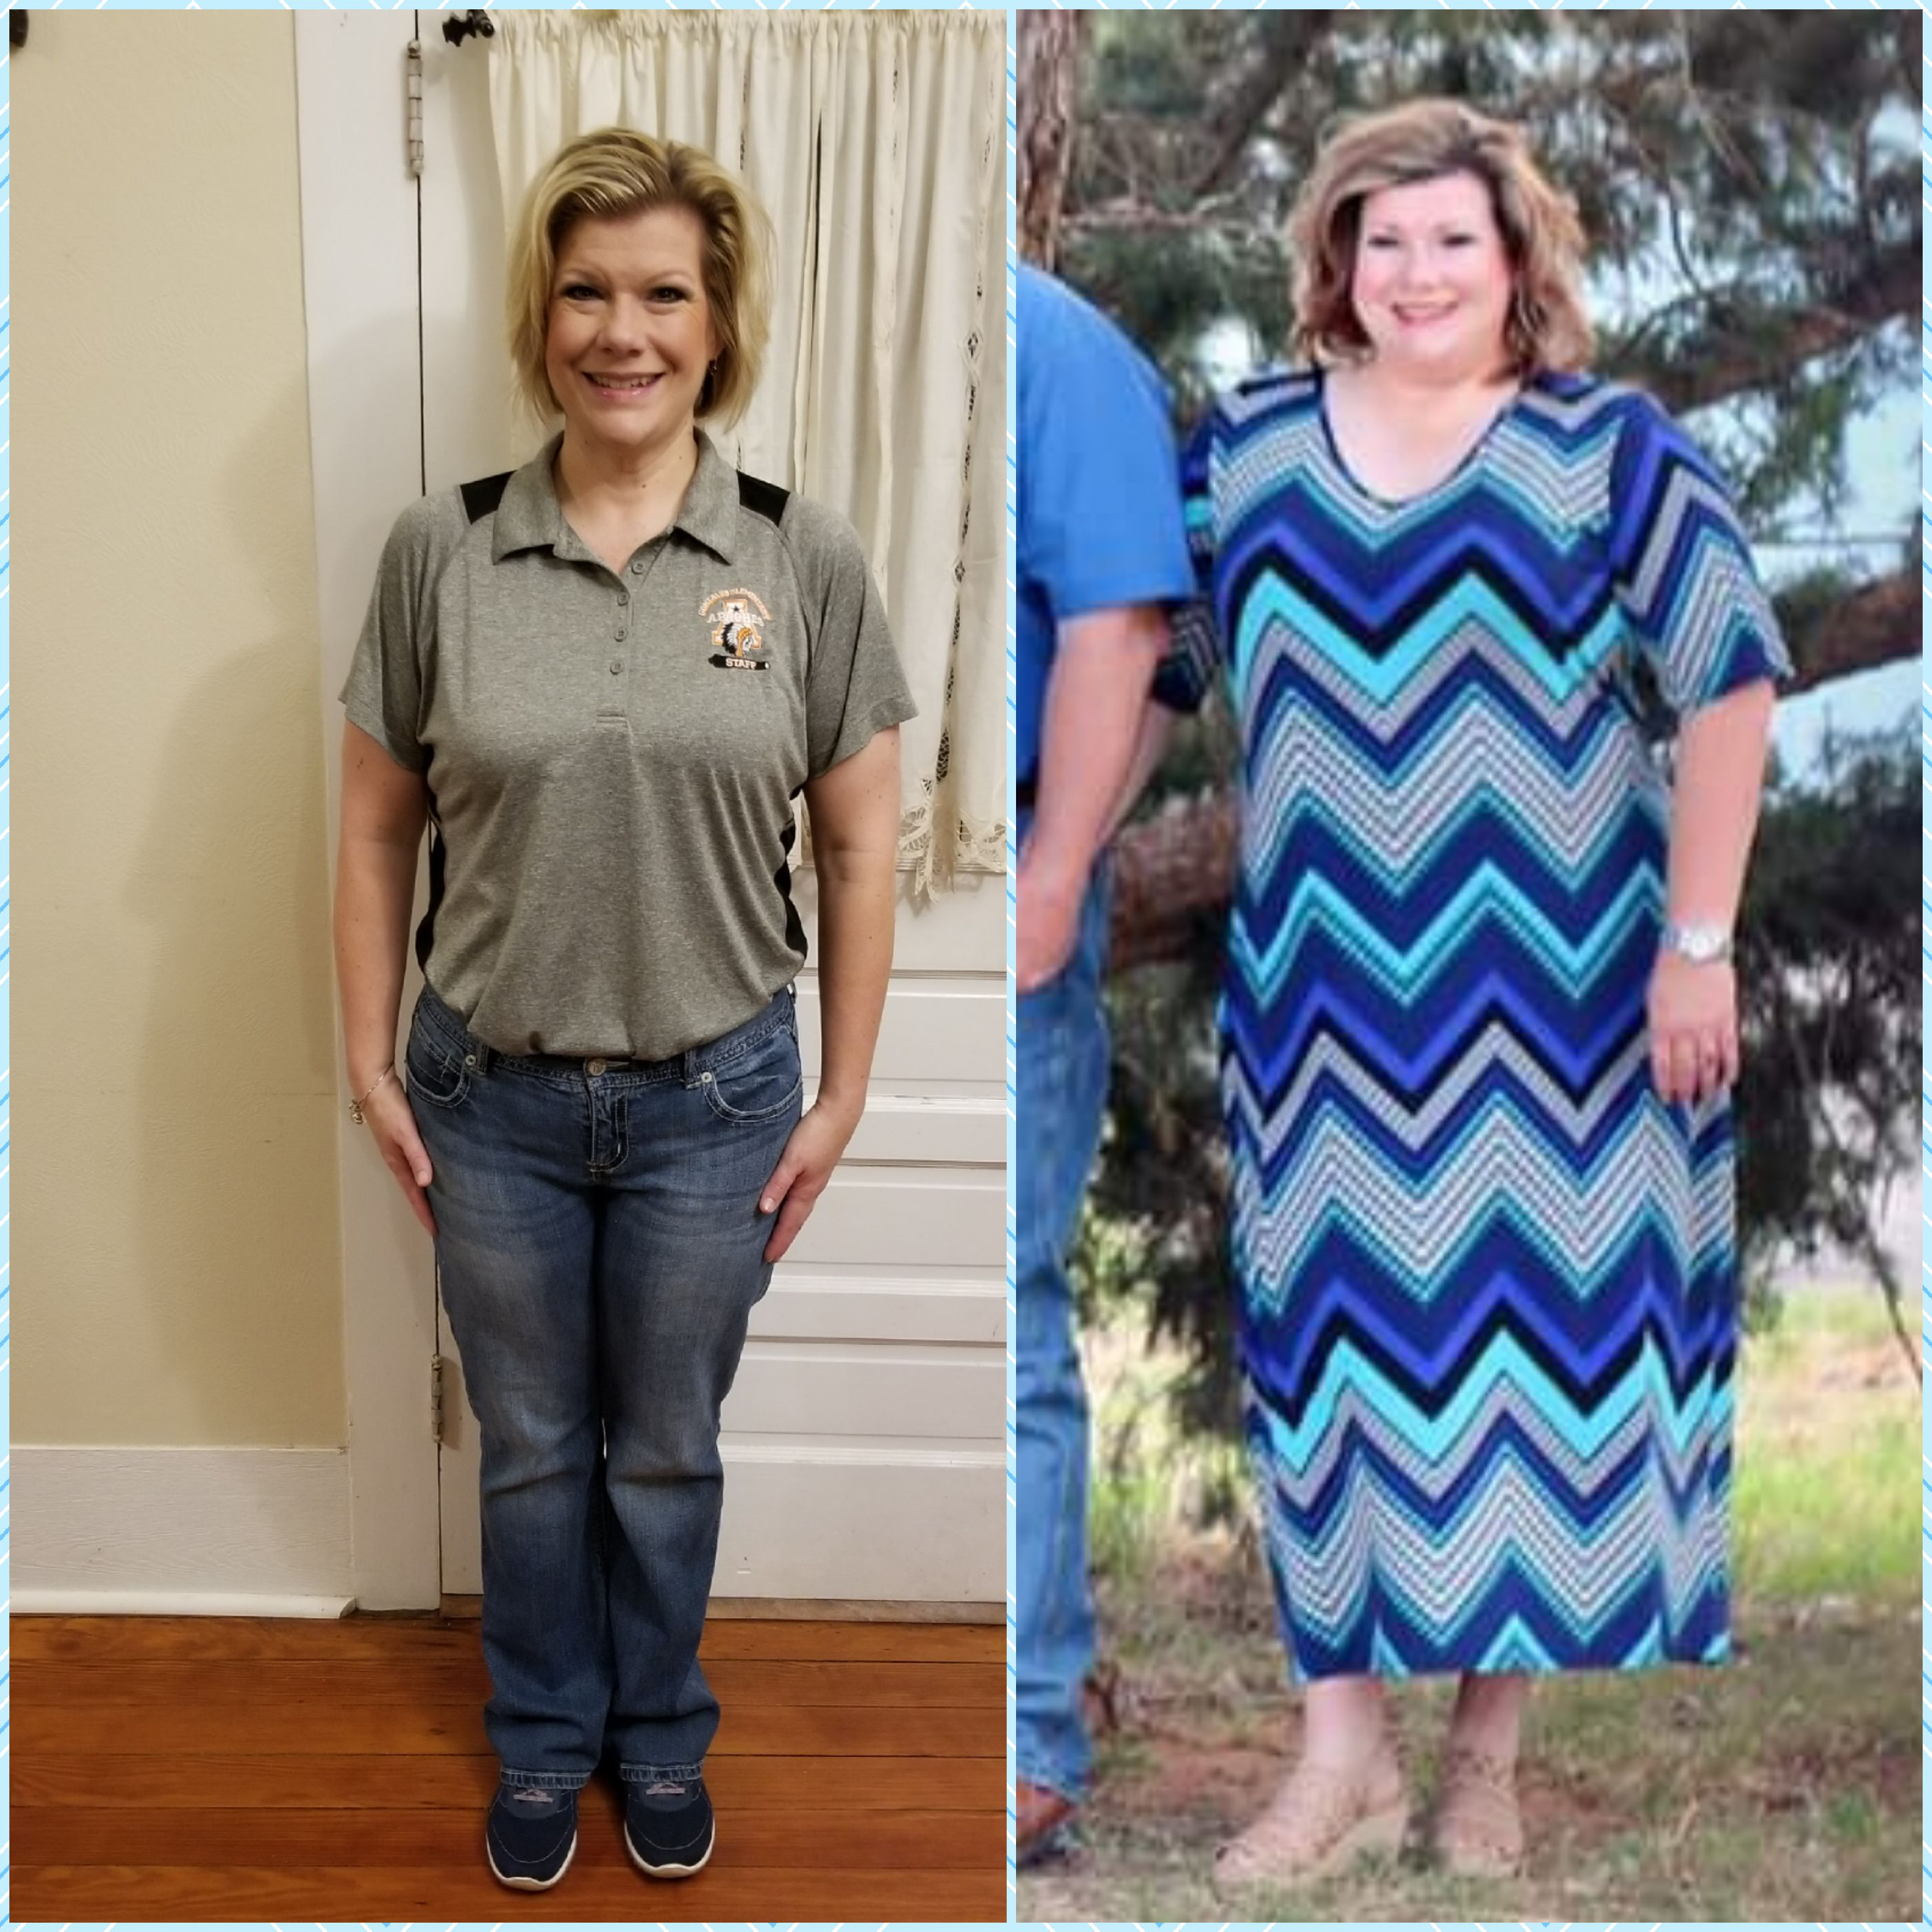 Christine lost 100 pounds! See my before and after weight loss pictures, and read amazing weight loss success stories from real women and their best weight loss diet plans and programs. Motivation to lose weight with walking and inspiration from before and after weightloss pics and photos.